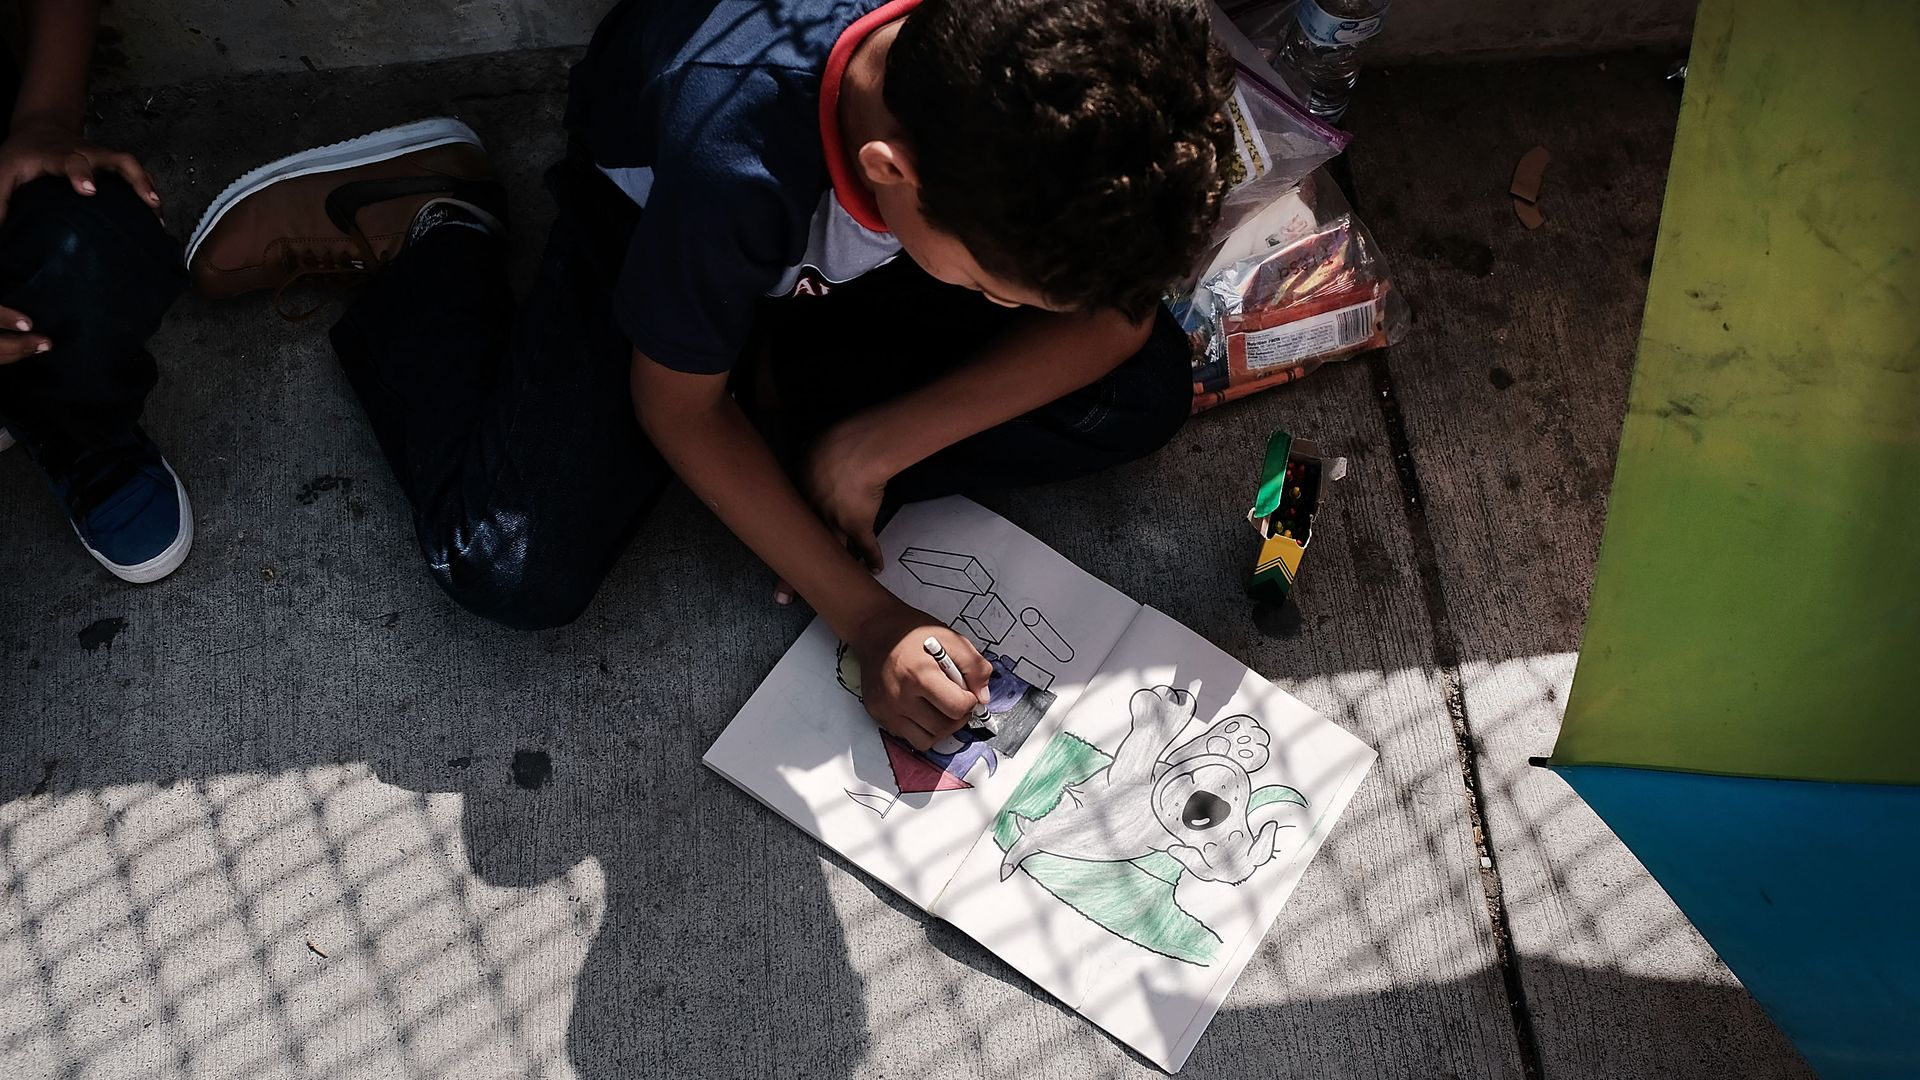 A migrant child colors at the border